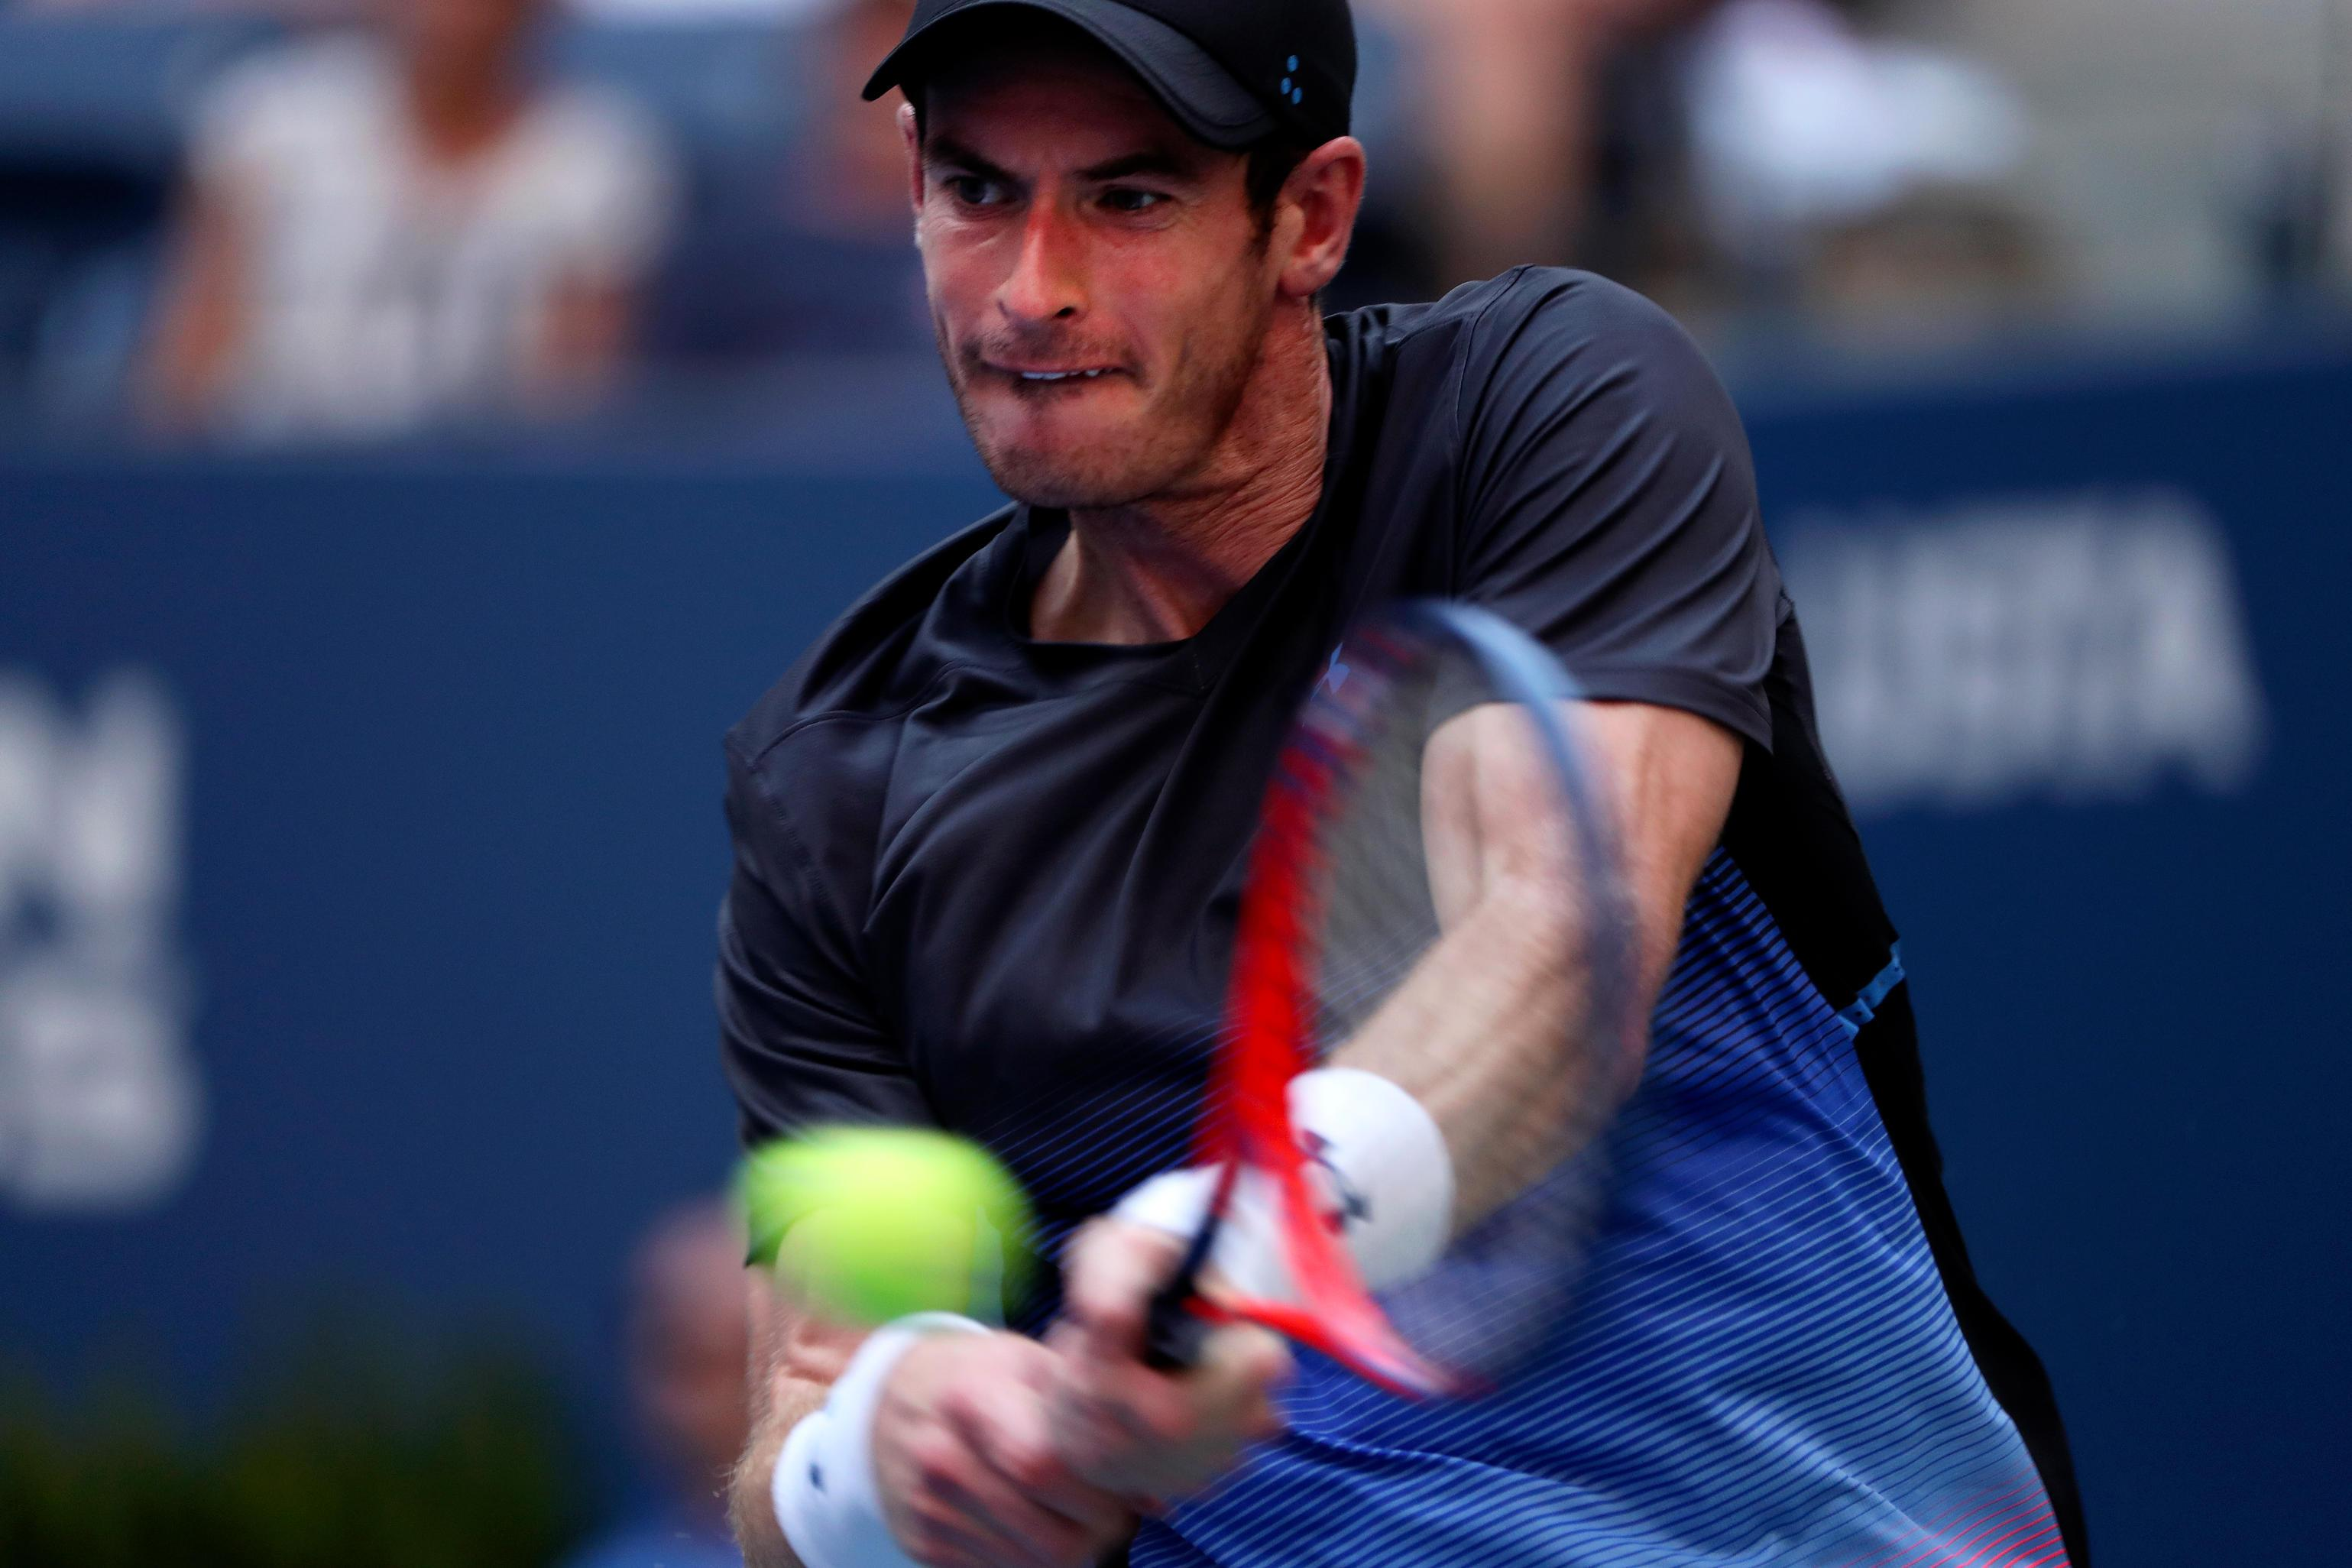 Andy Murray admits he faces a tough battle if he wants to return to the very top